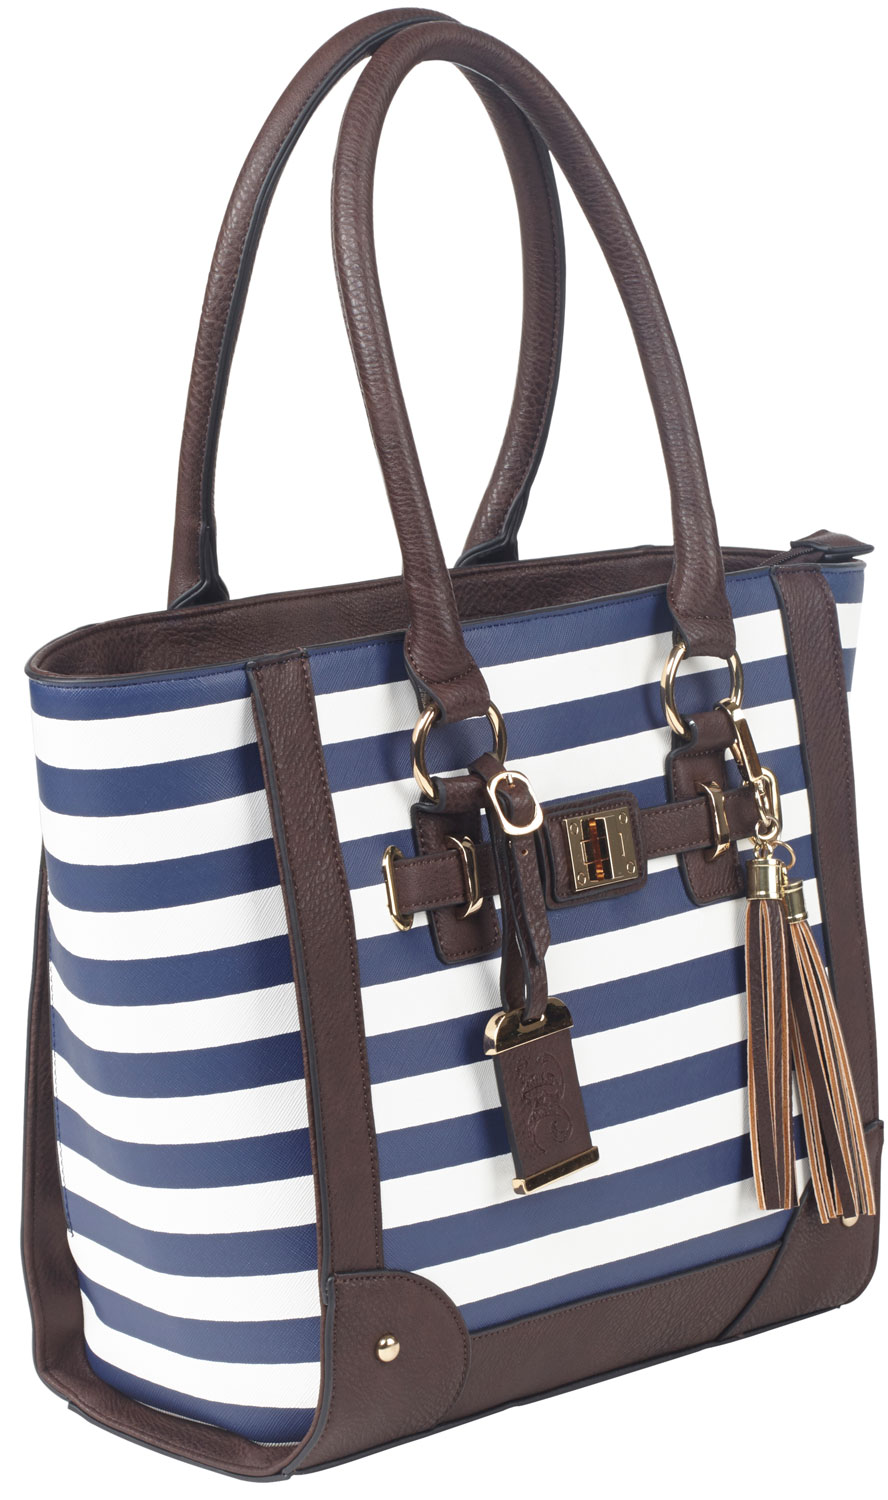 BULLDOG TOTE PURSE NAVY